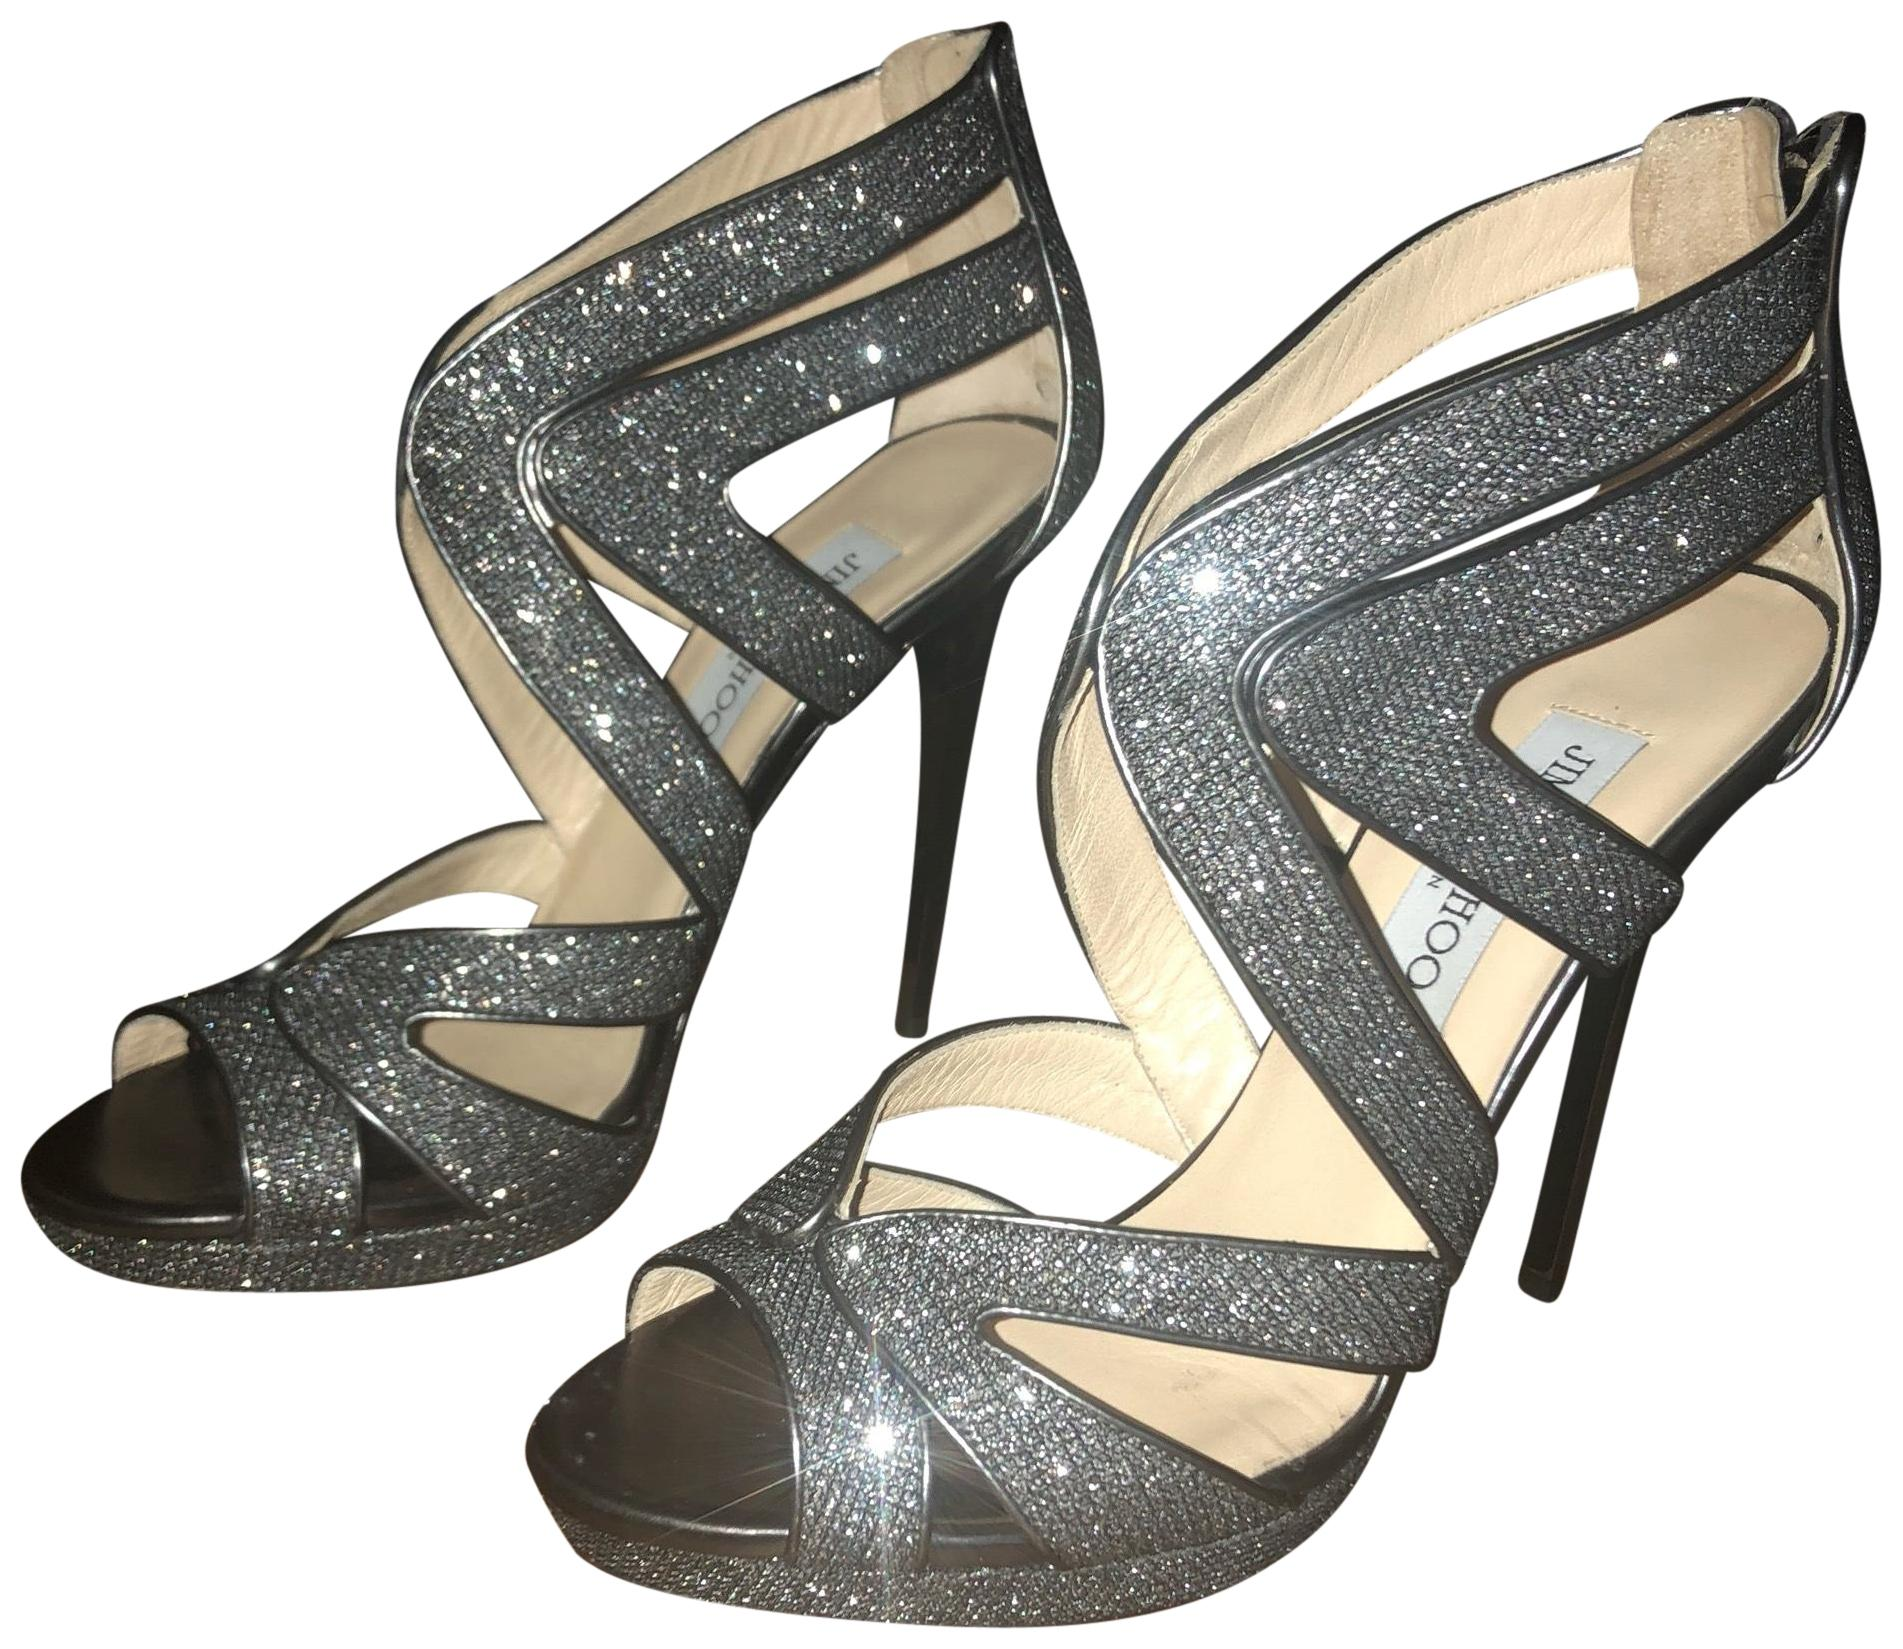 Jimmy Choo Pewter Sparkle Youth Mbe Formal Shoes Size EU 38.5 (Approx. US 8.5) Regular (M, B)